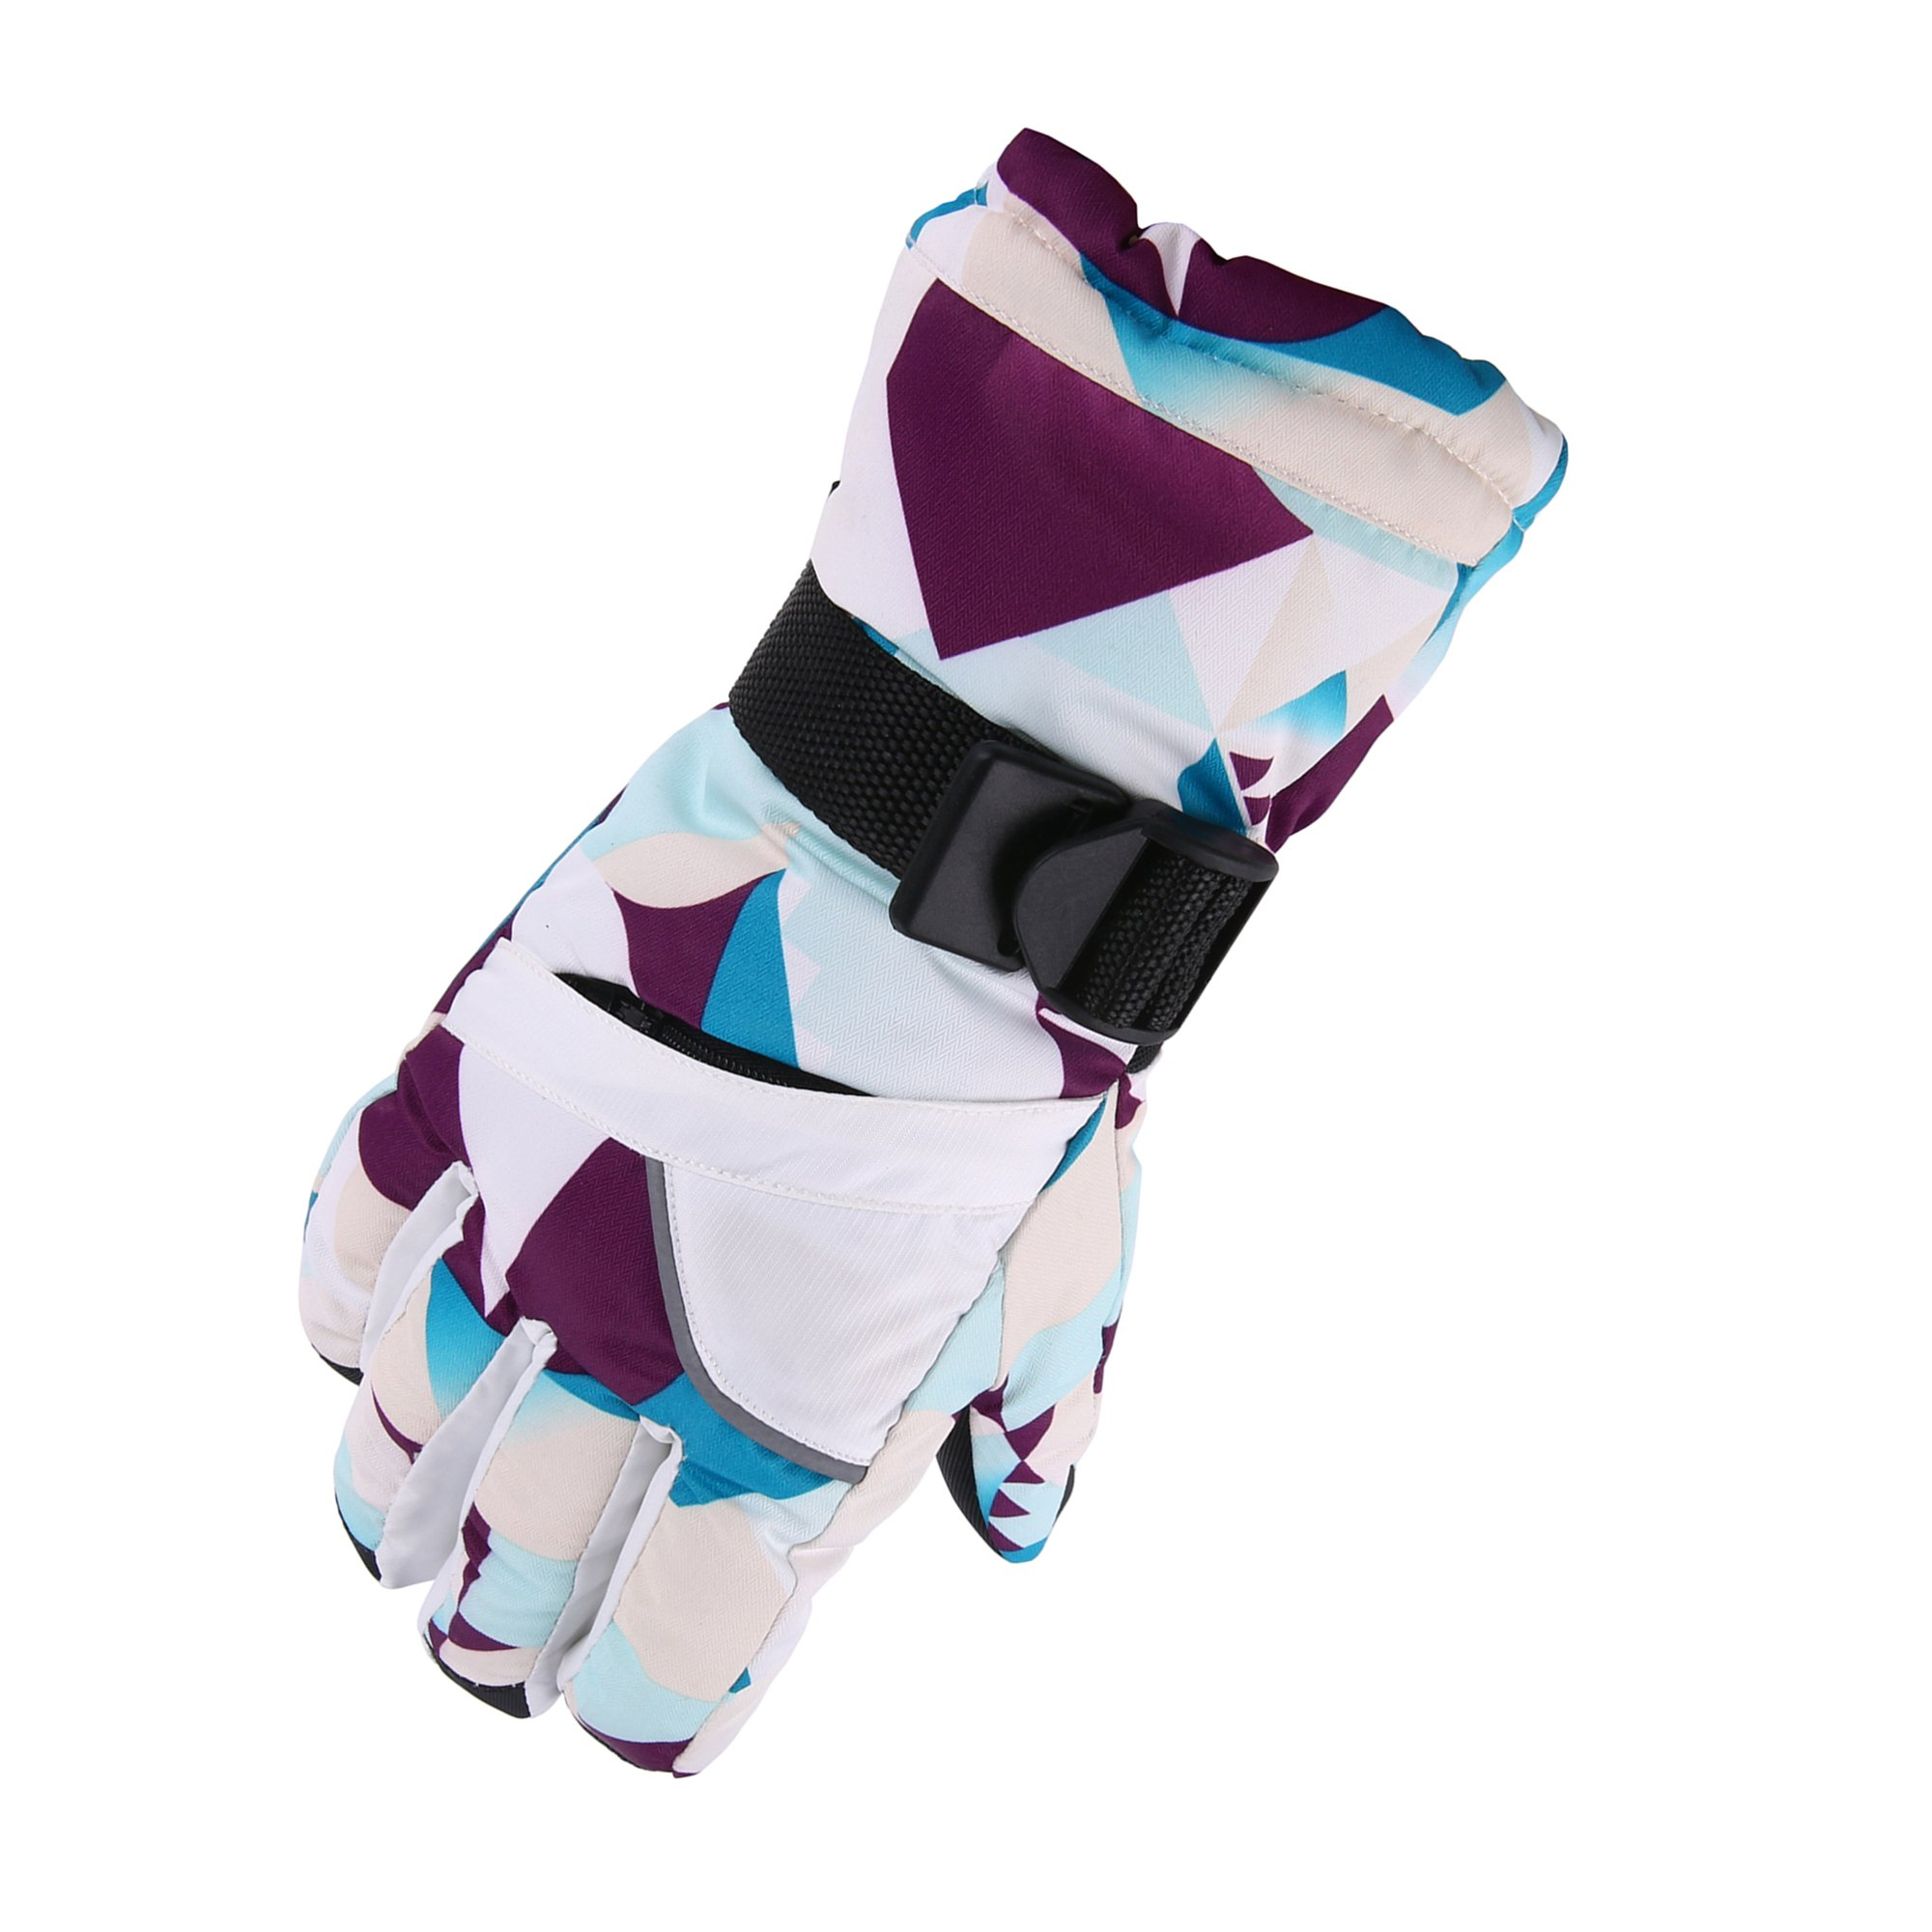 Unistrengh Women's Ski Gloves Warm Breathable Windproof Snow Snowboard Gloves for Winter Outdoor Skiing Snowboarding Snowmobile (Medium, Purple/White)